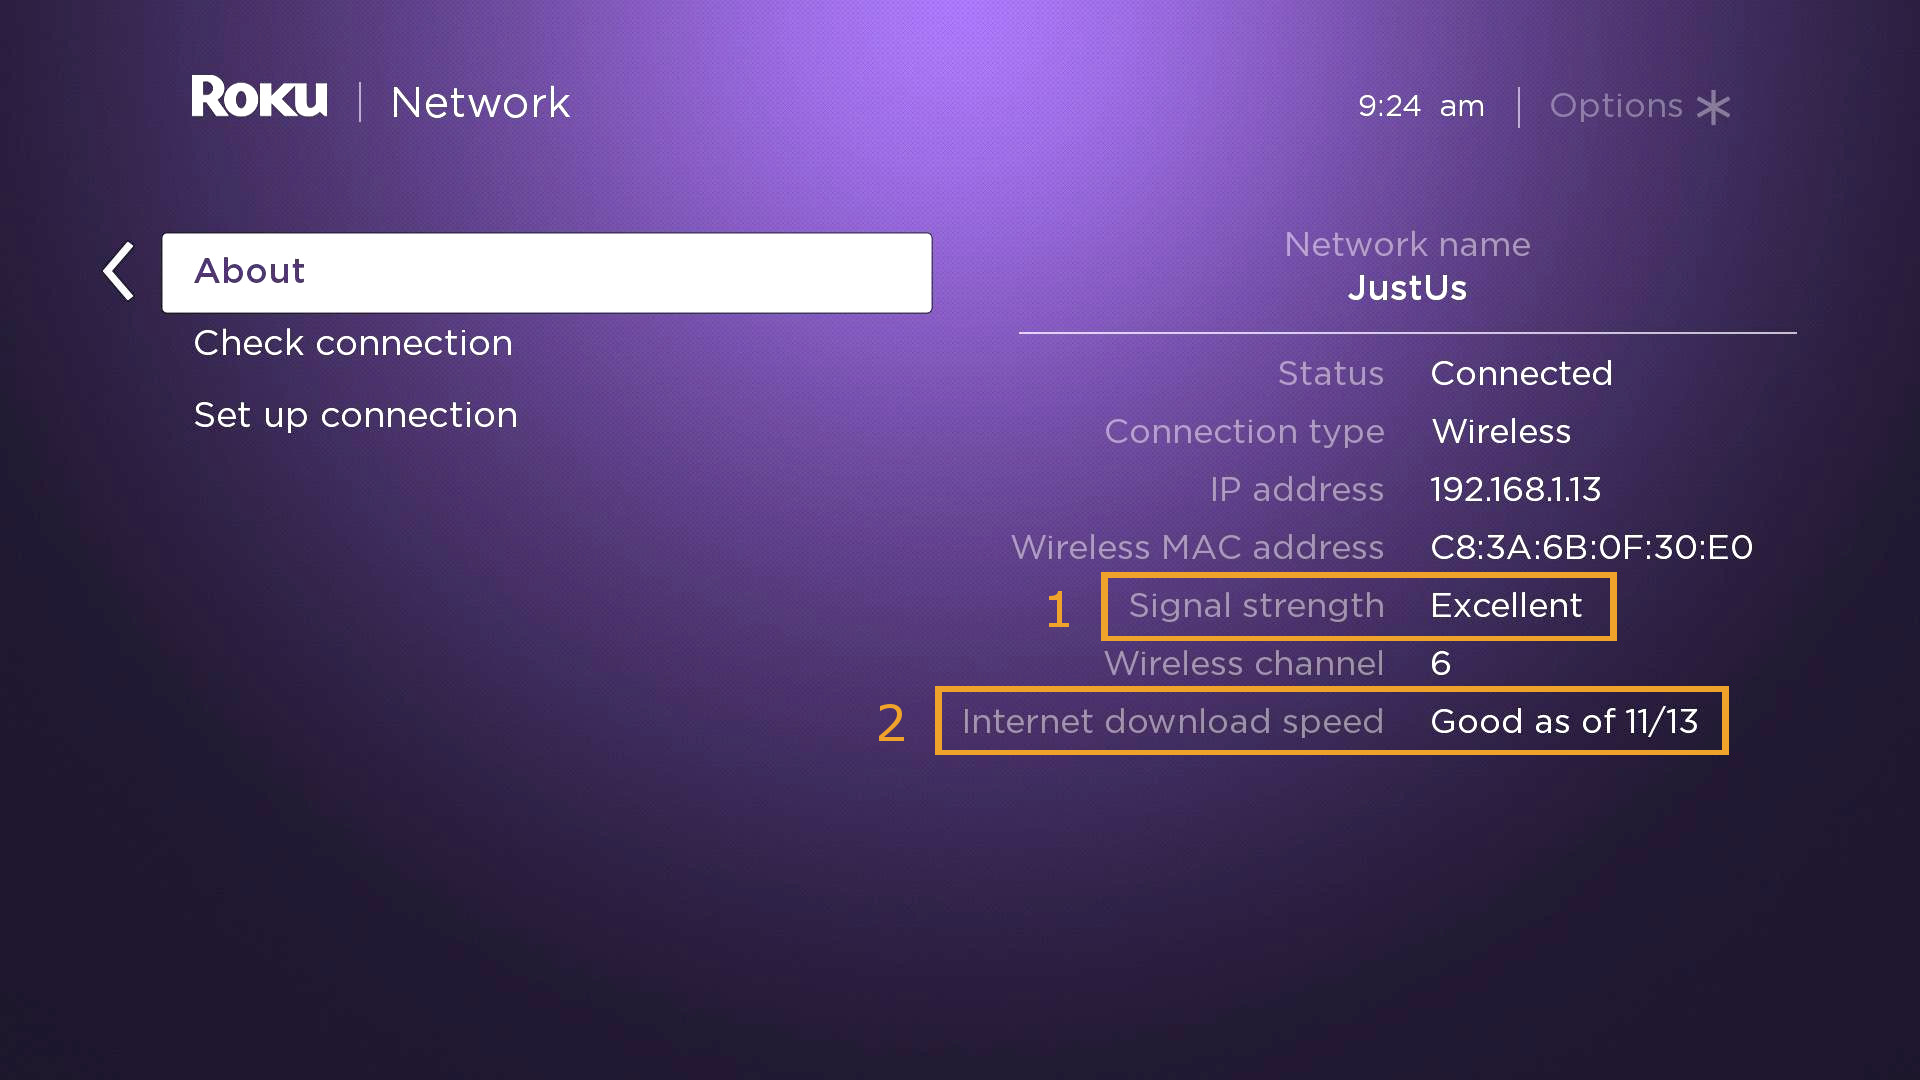 Roku internet connectivity test results